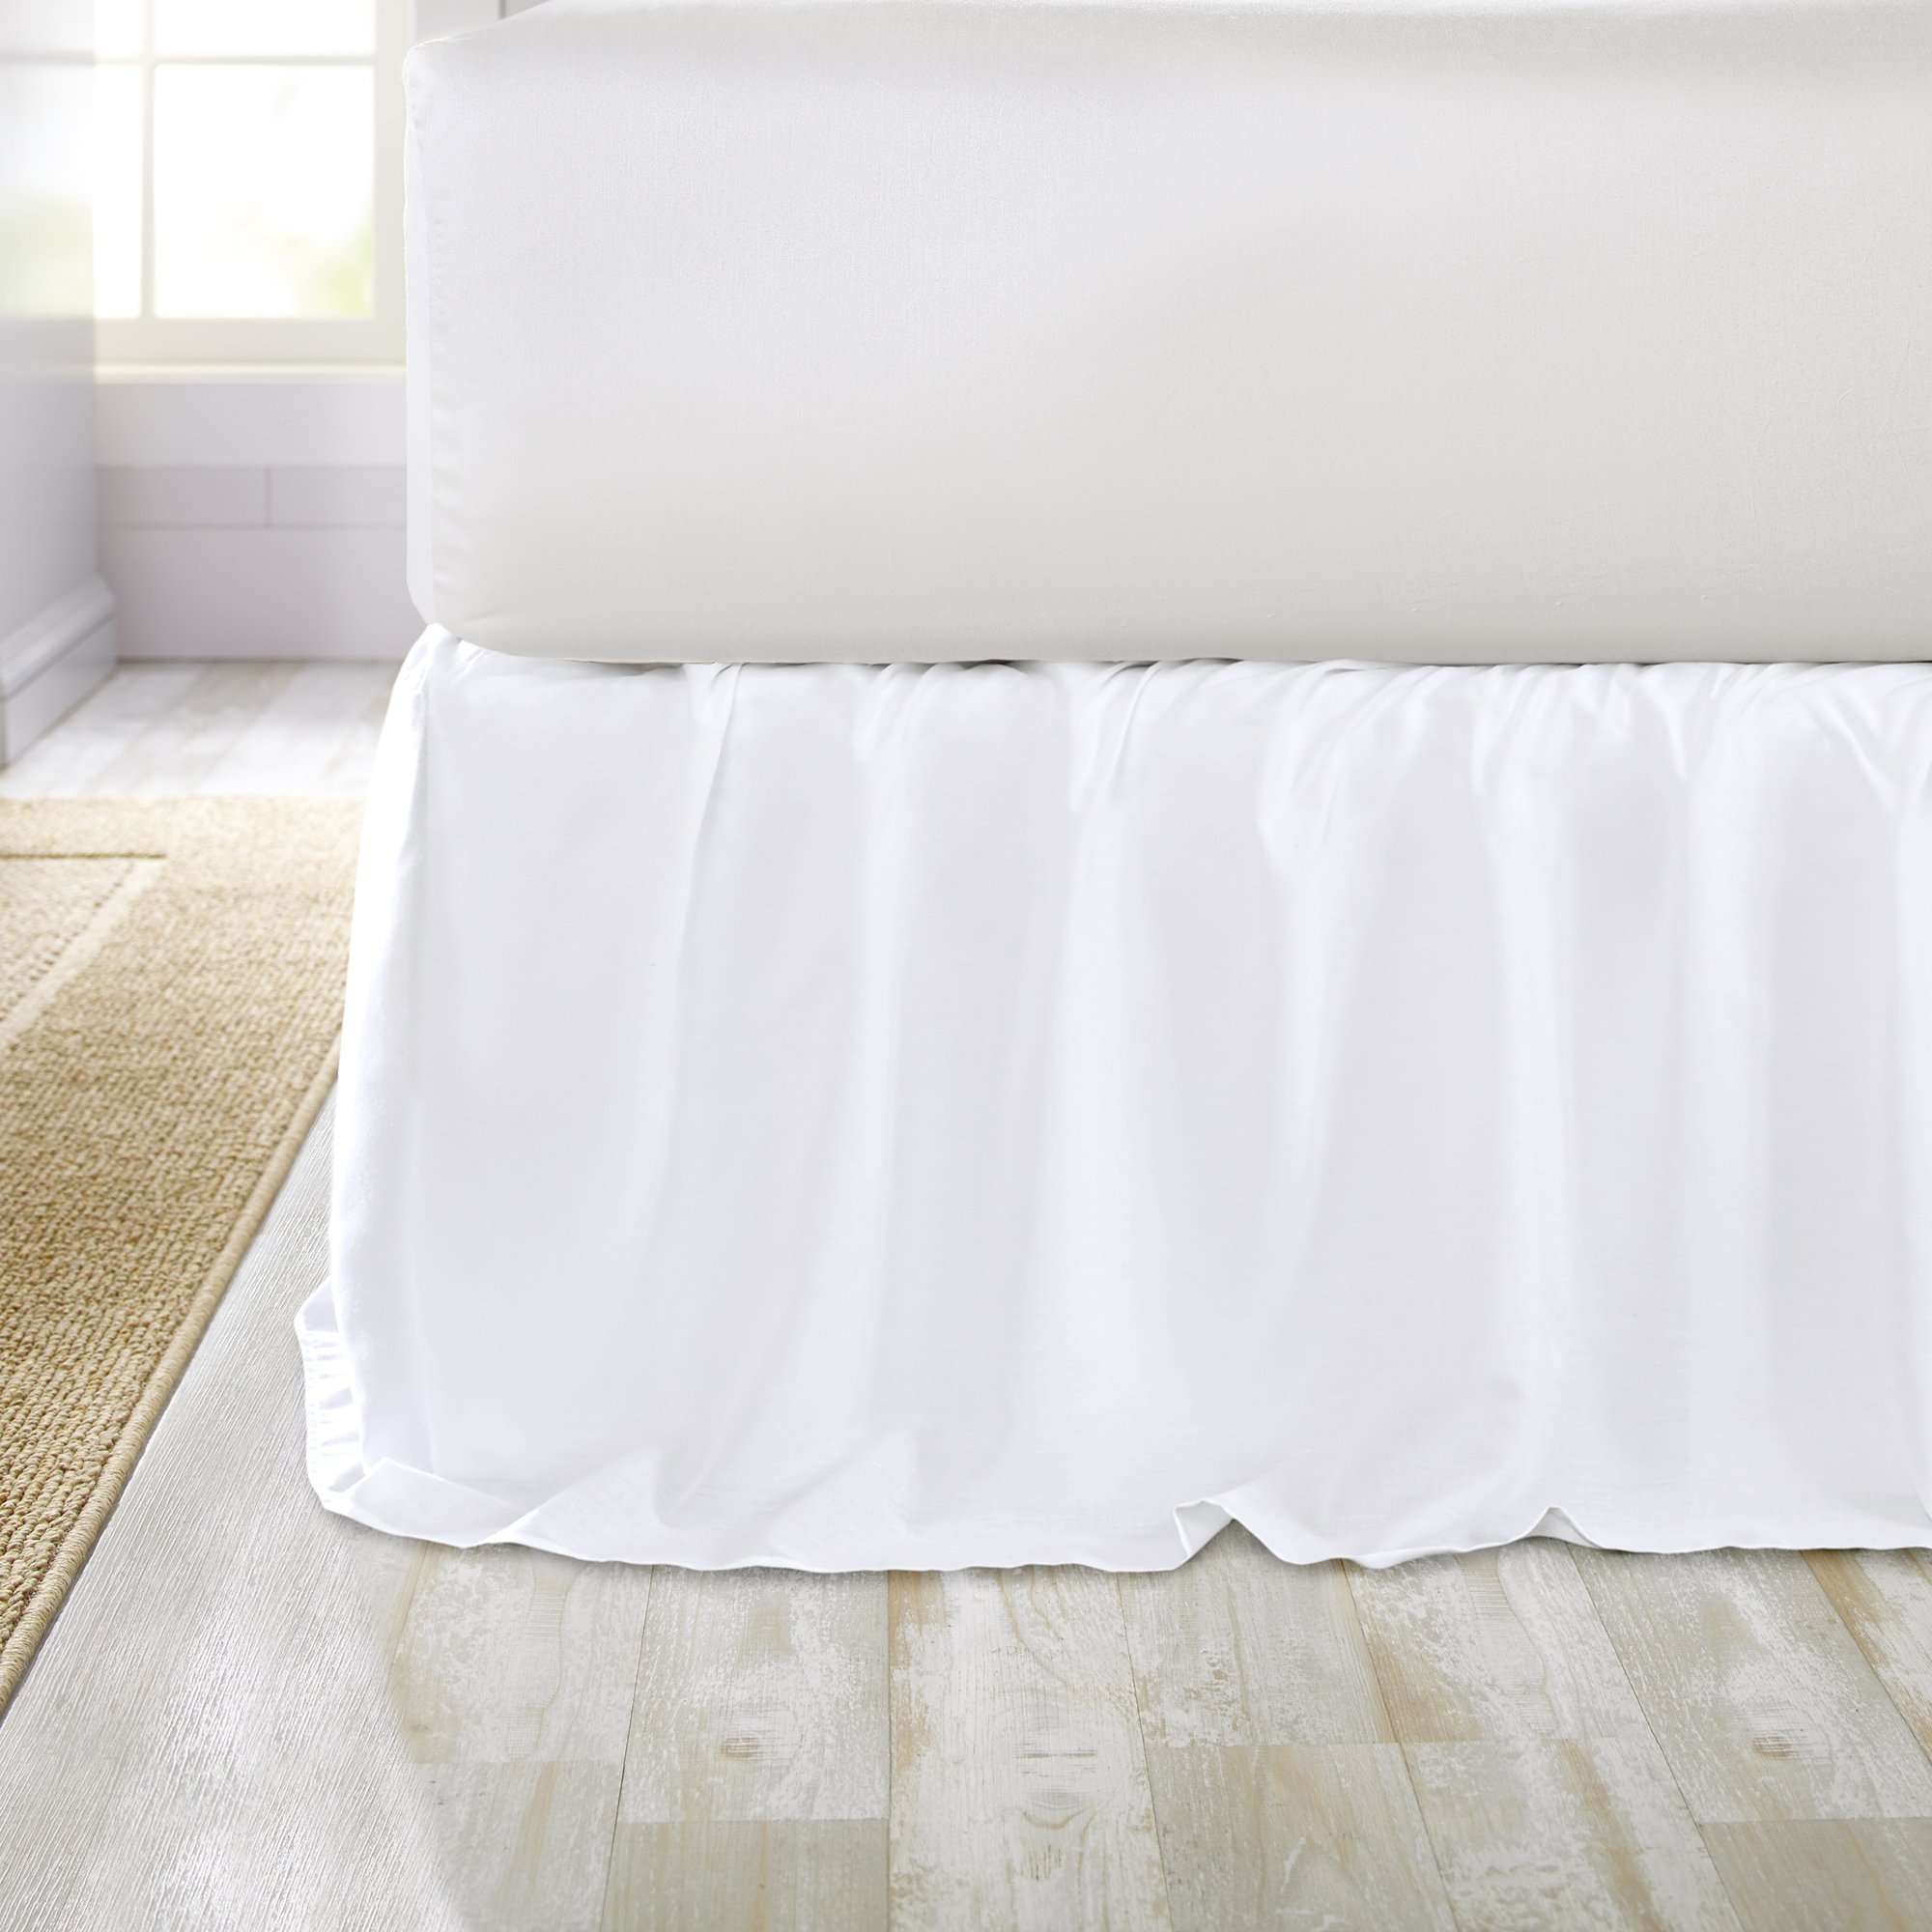 a3677ad3f Extra Long Bed Skirt Walmart